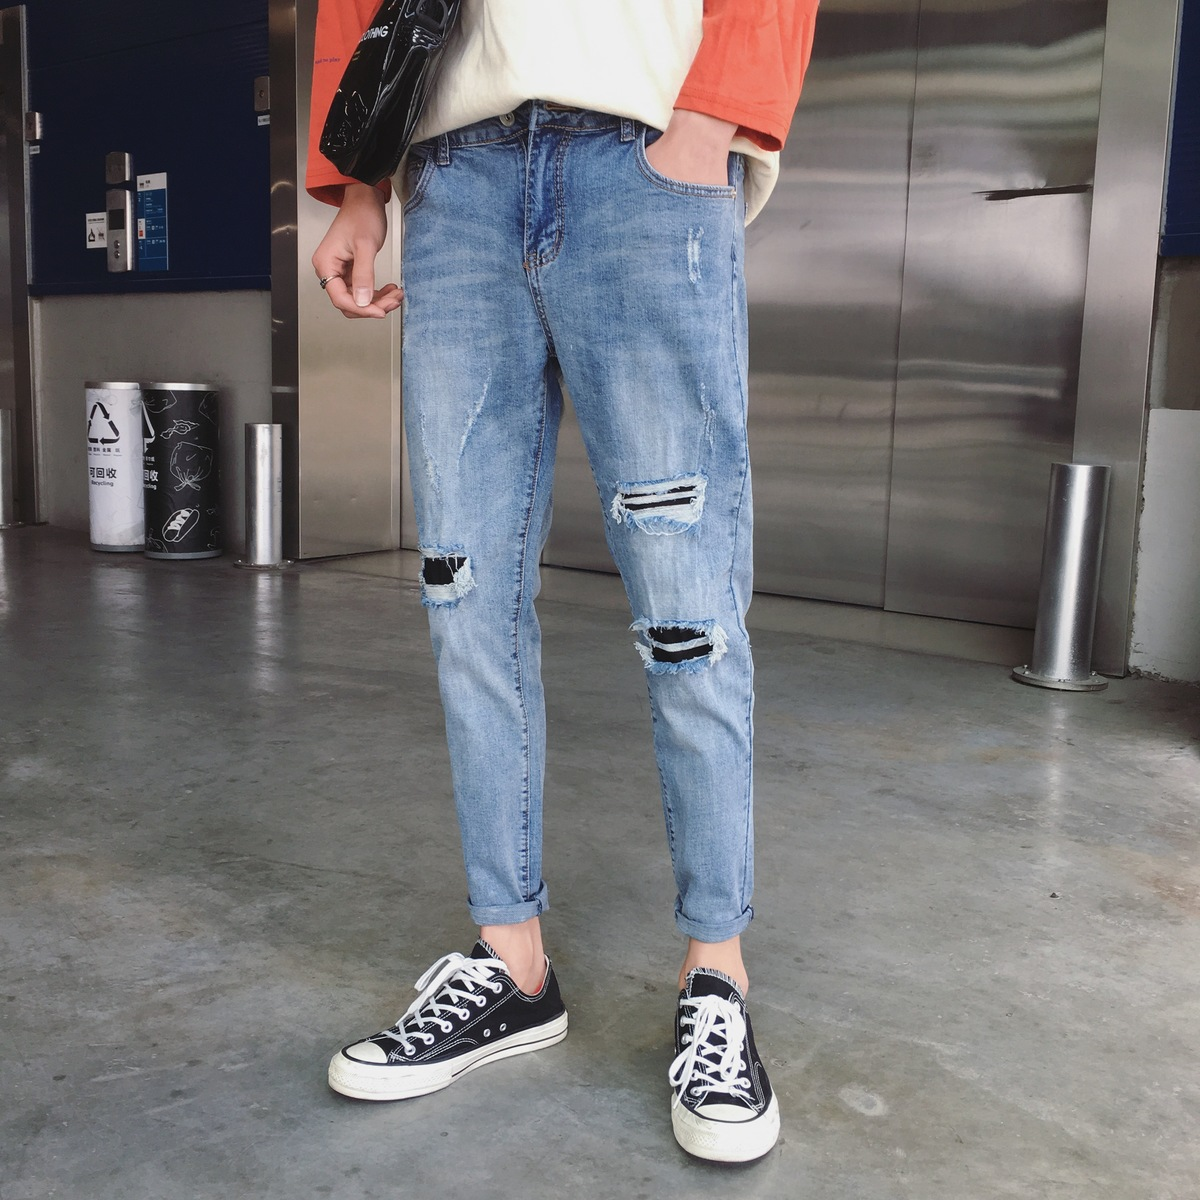 2018 New Korean Men Fashion Casual Classic Blue Color Holes Ankle-length Denim Pants Tide Stretch Slim Fit Jeans Homme Trousers